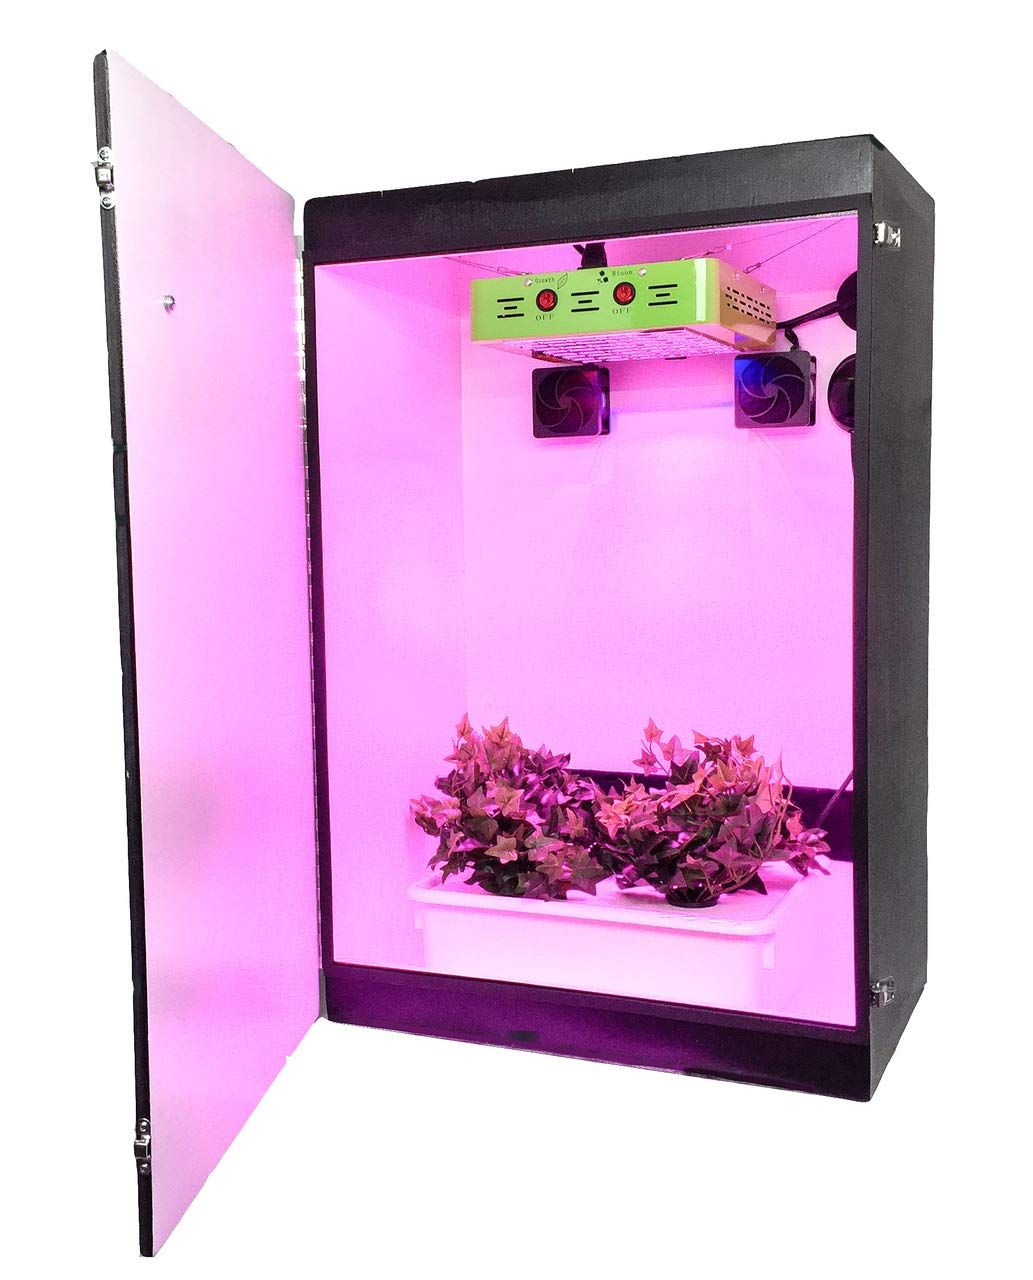 Grandma's Secret Garden 5.0-4 Plant Hydroponics Grow Box